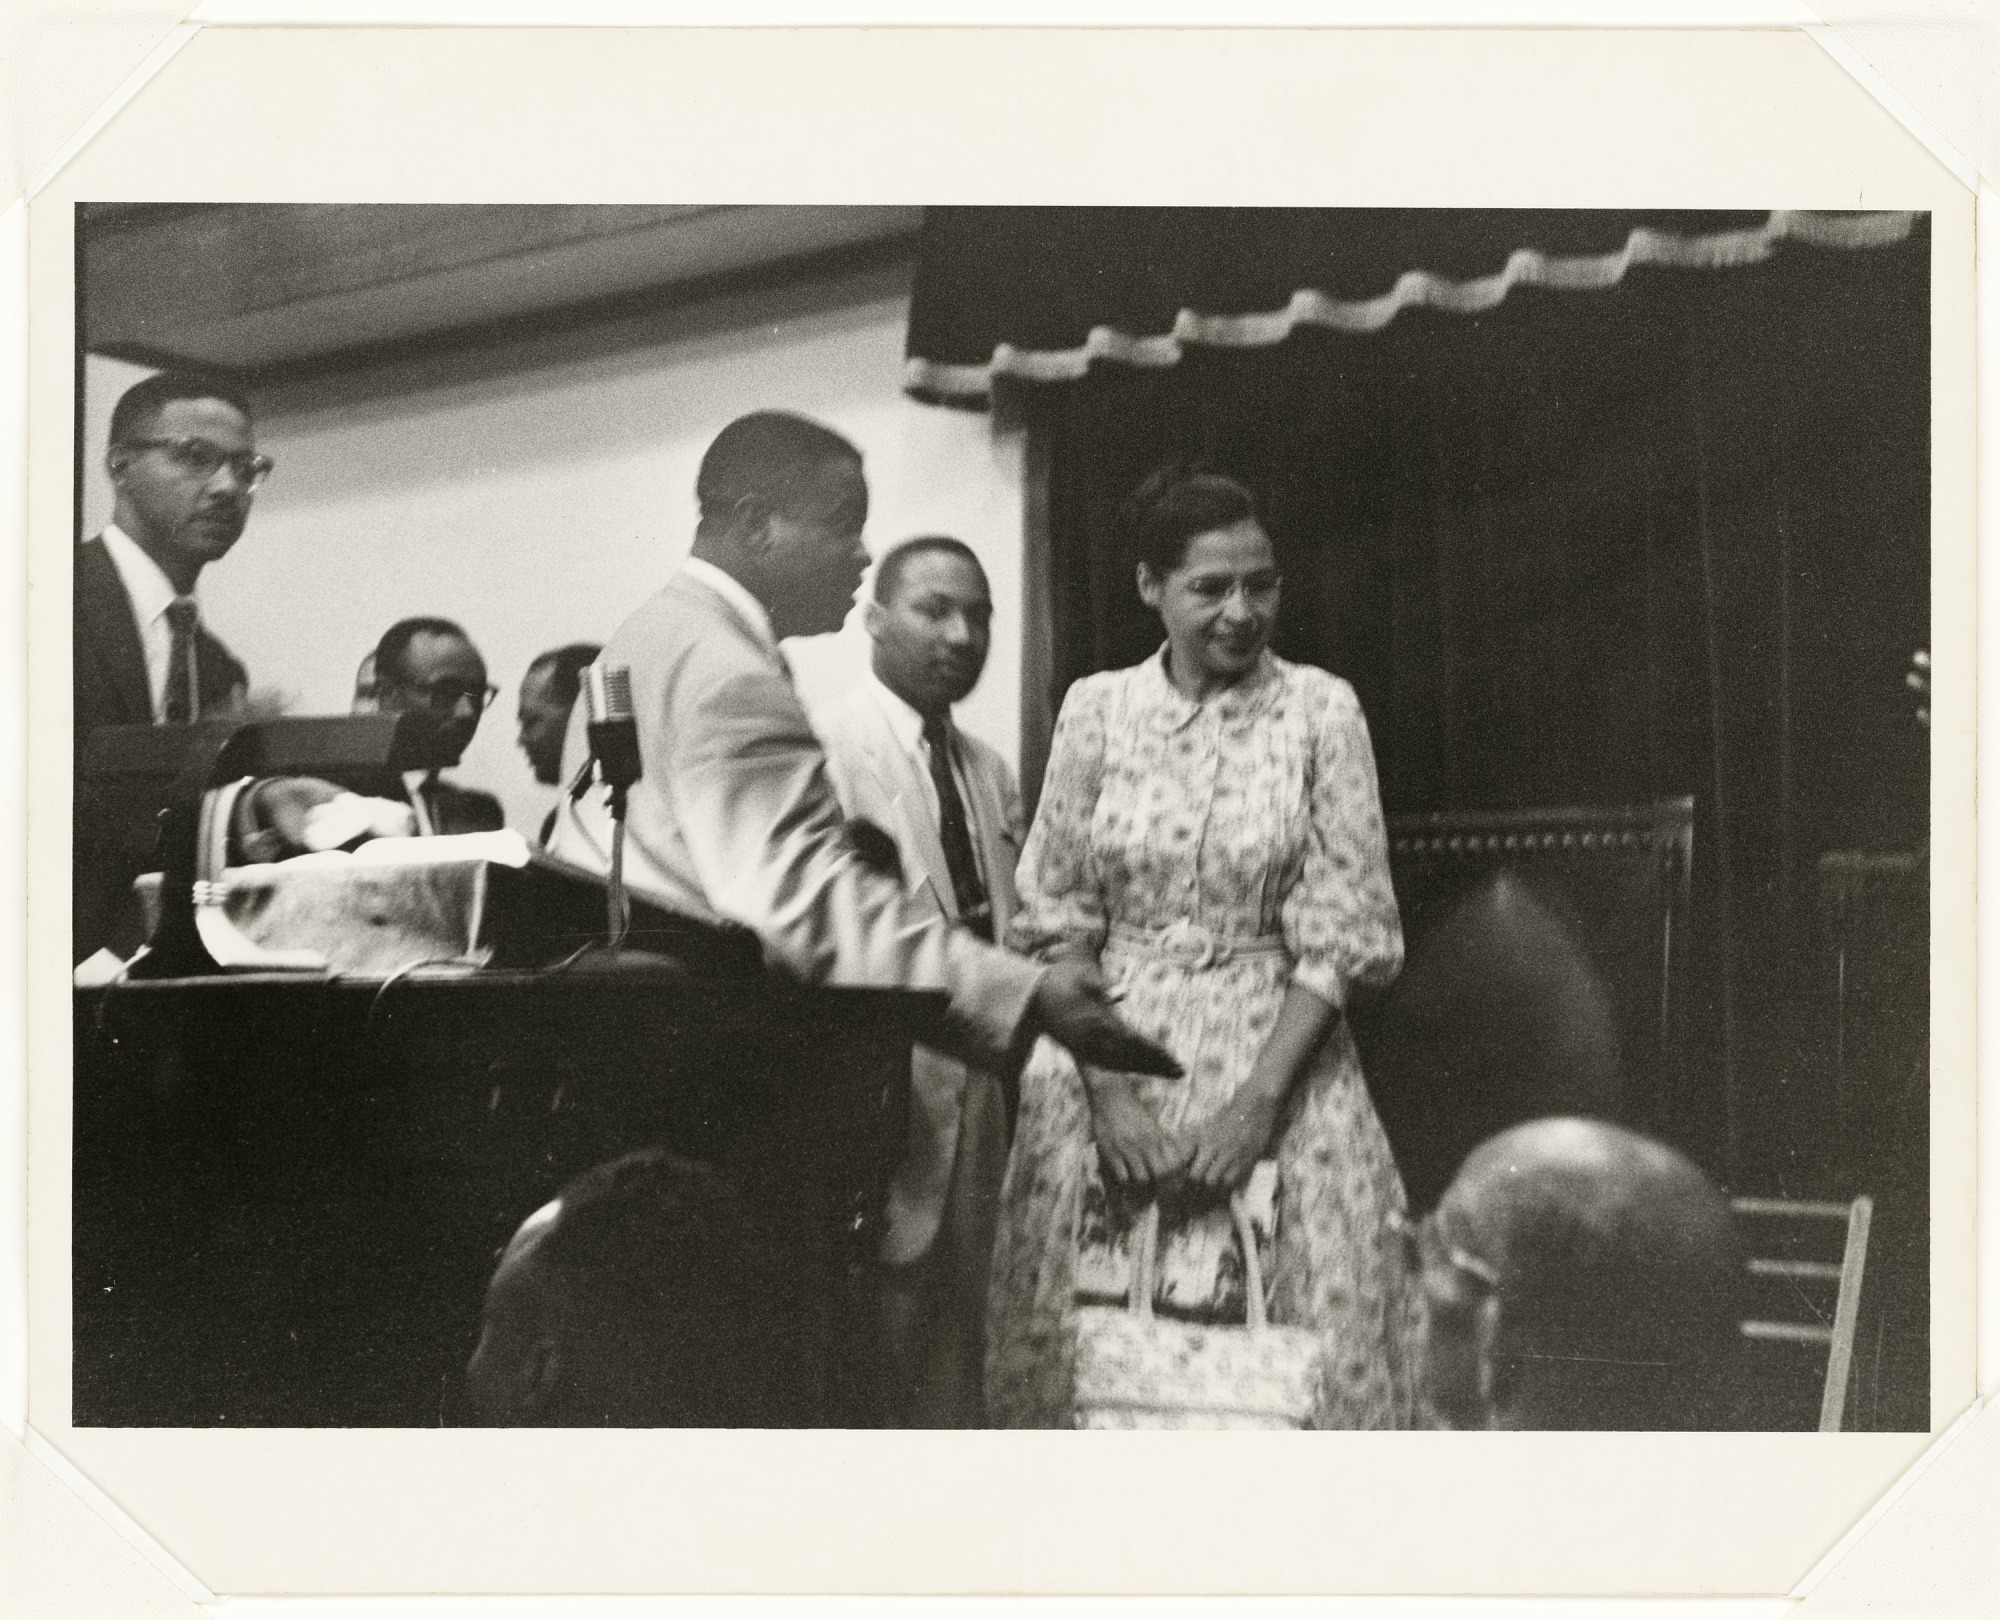 images for <I>Rosa Parks, Martin Luther King Jr., and Ralph Abernathy, Ebenezer Baptist Church During Bus Boycott</I>